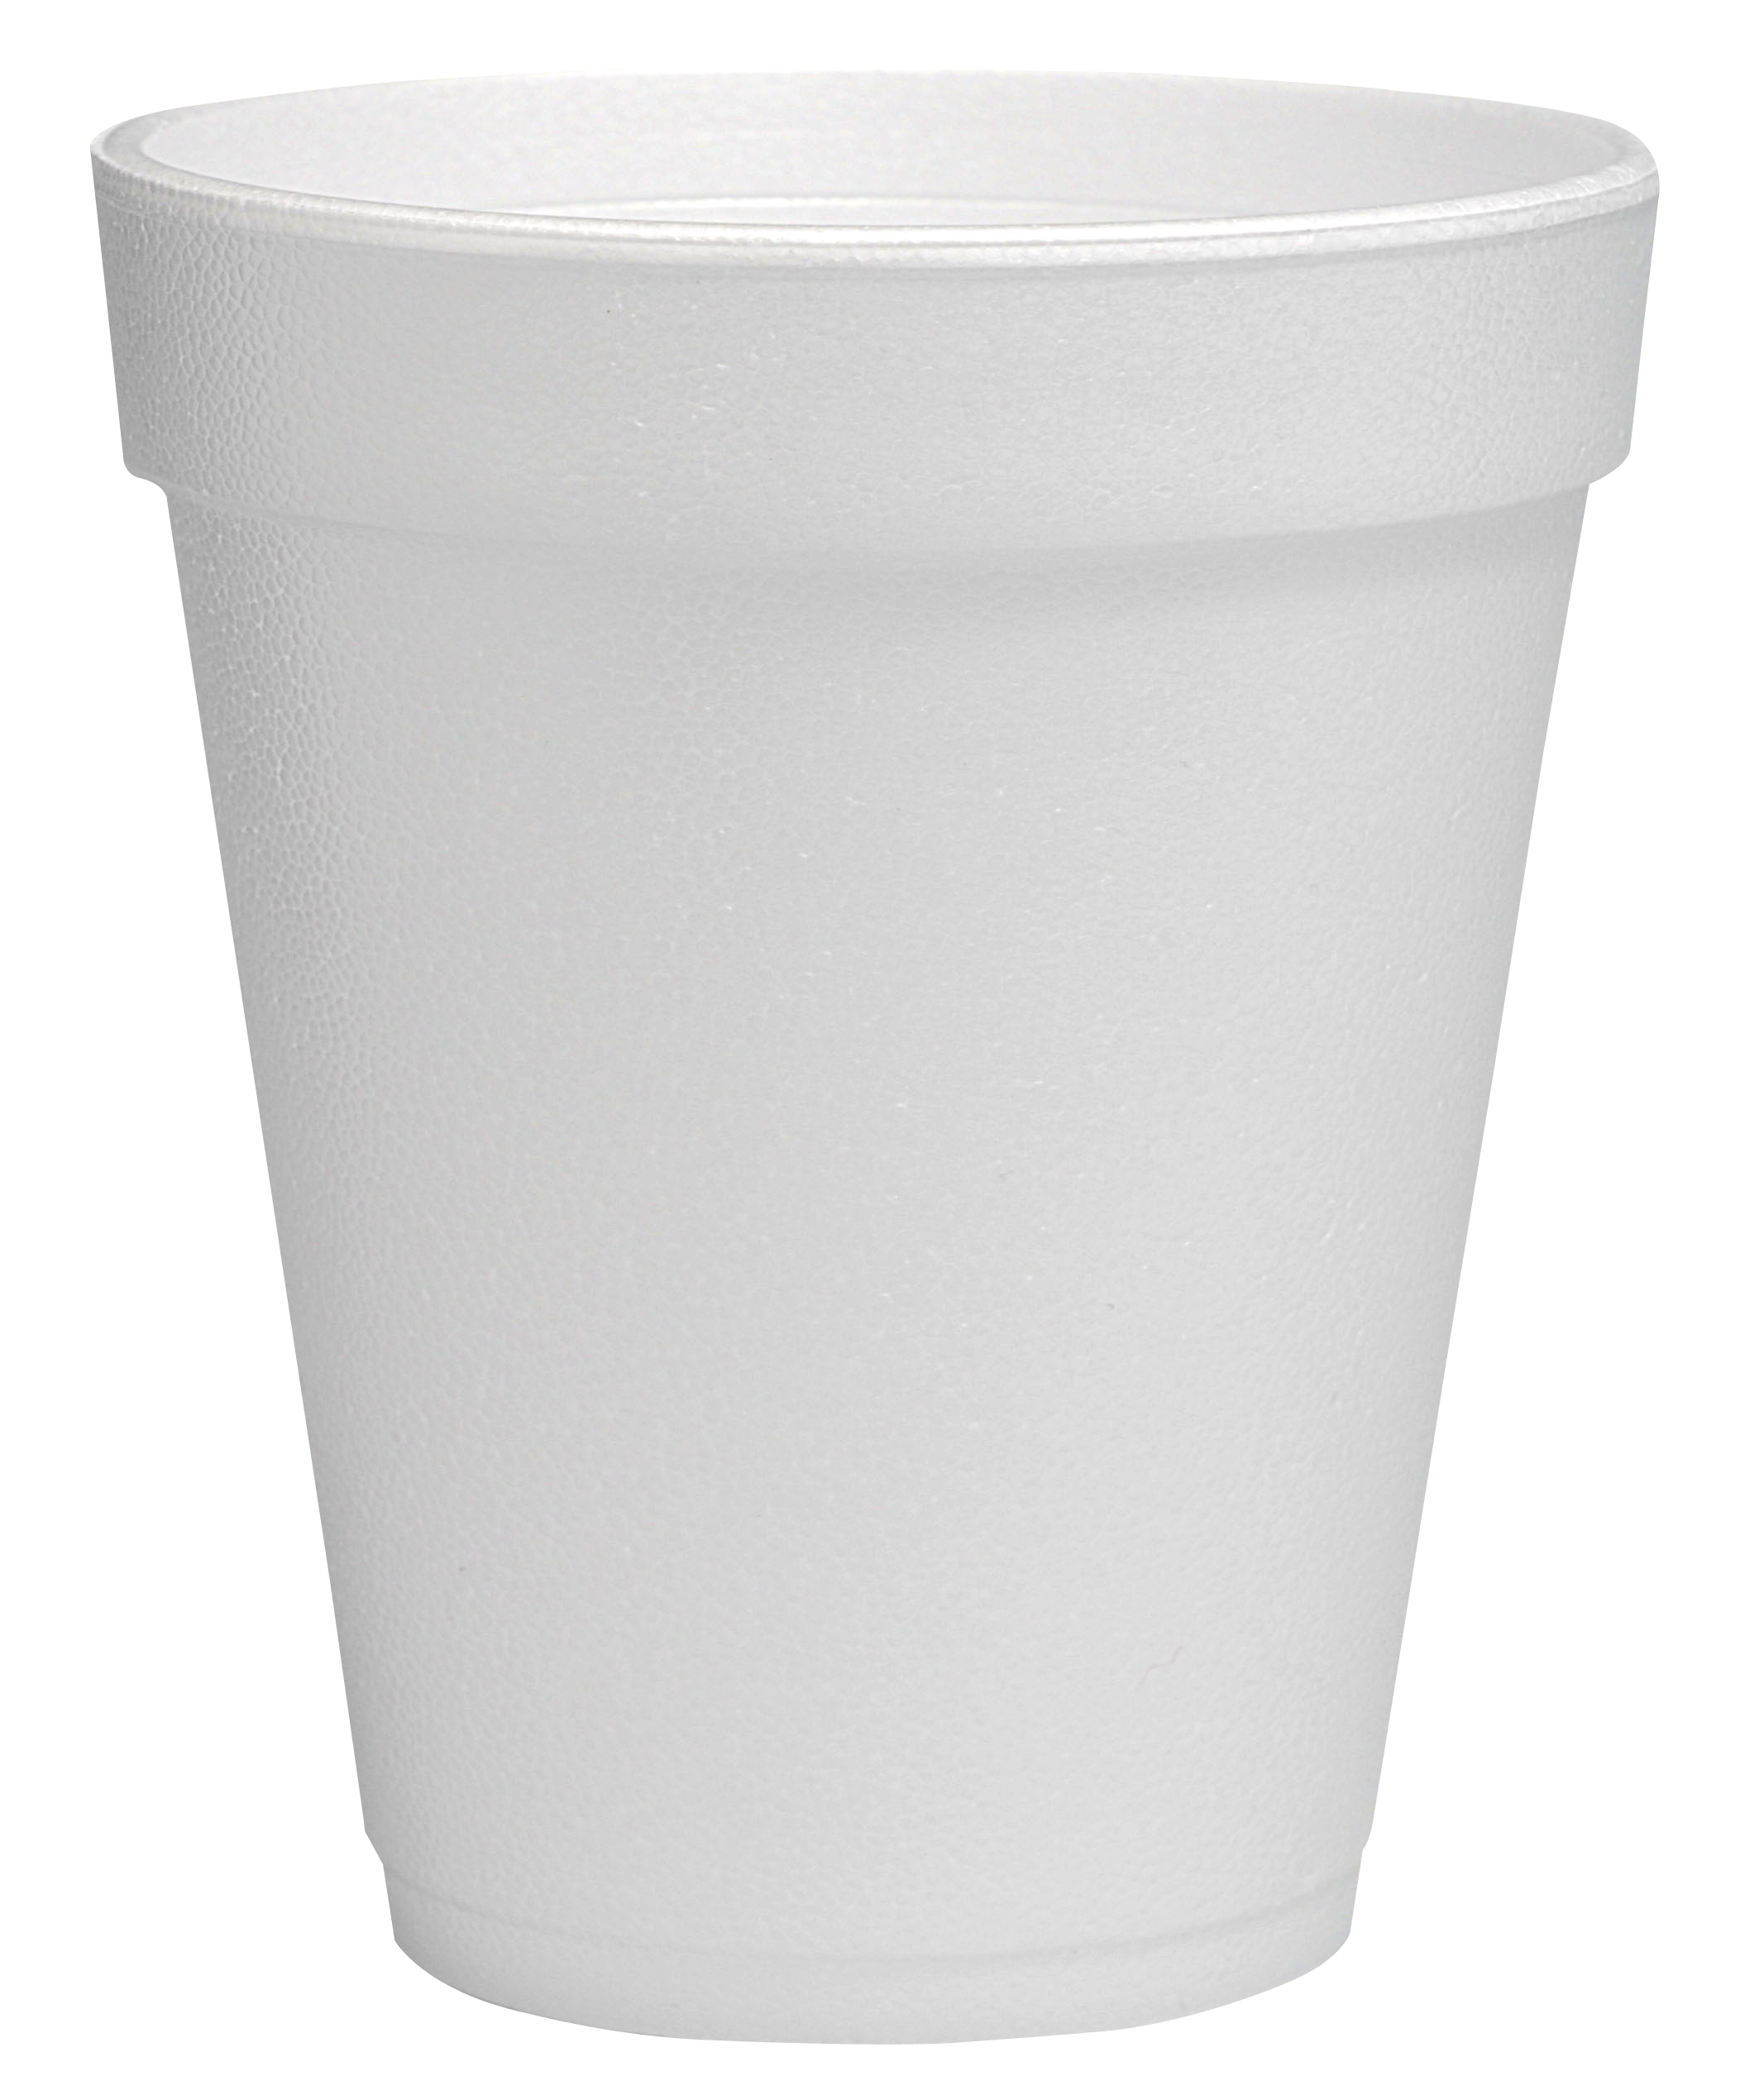 Plastic Cup Png Image Plastic Cup Cup Plastic